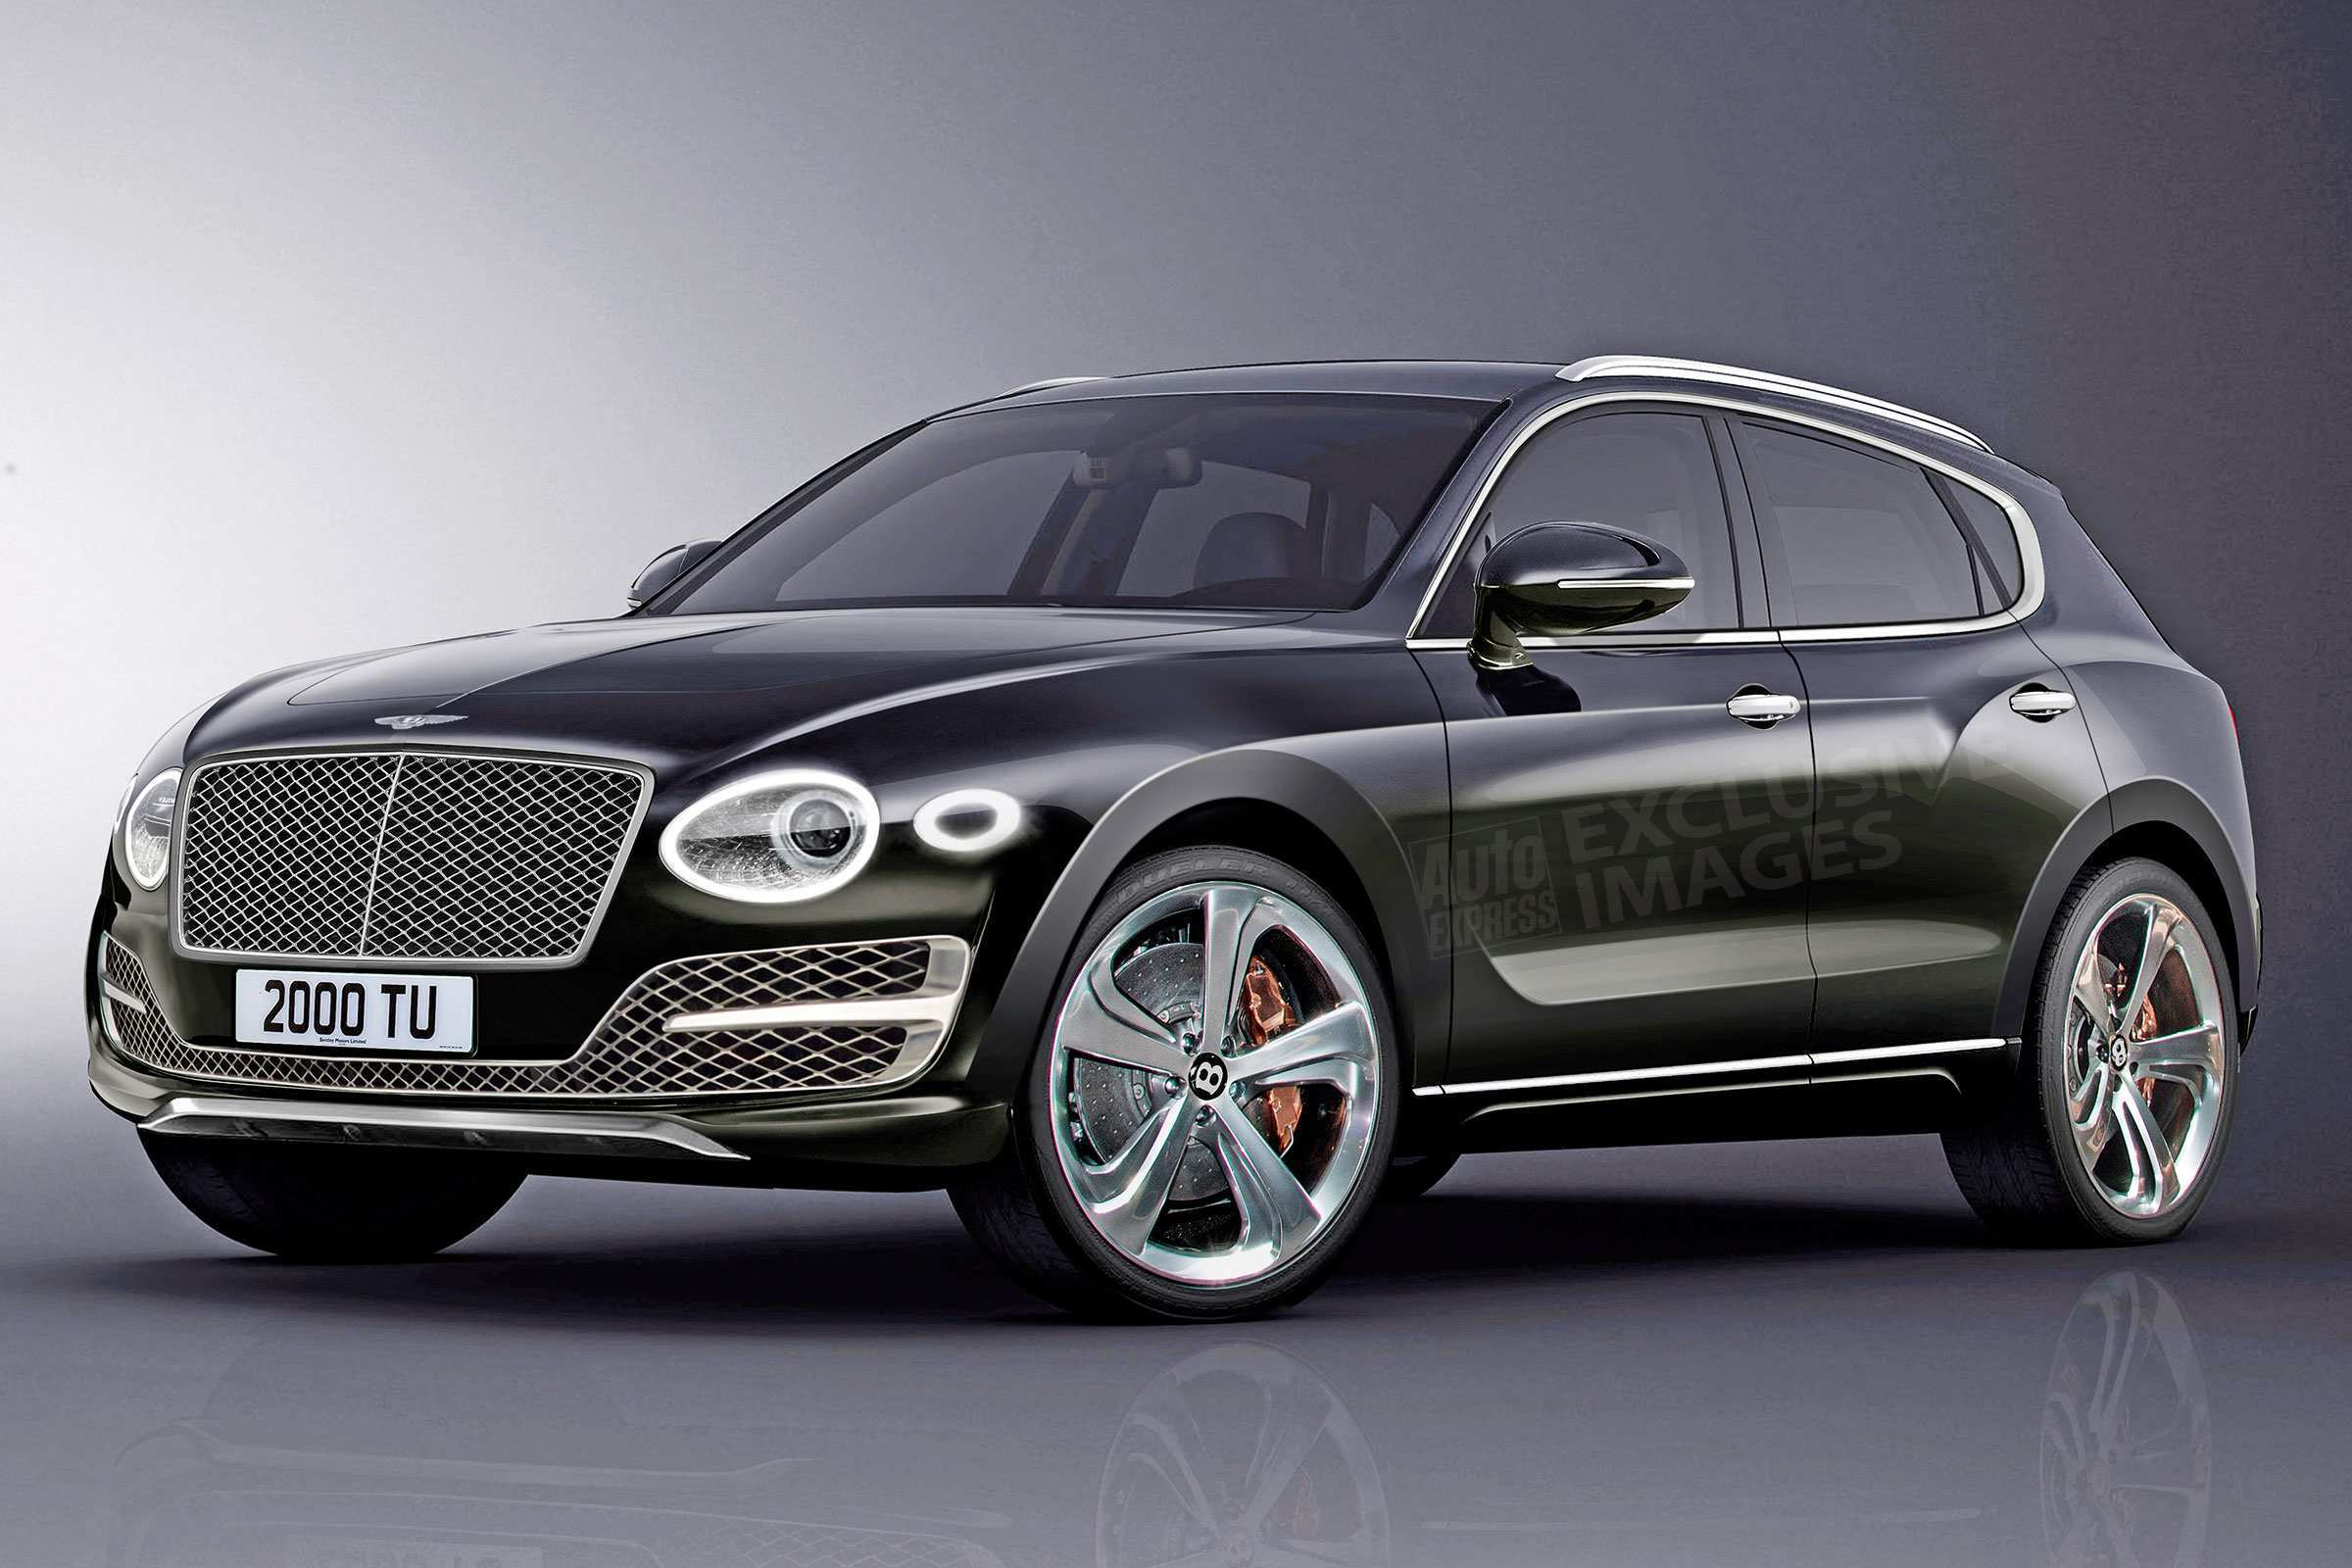 74 All New 2020 Bentley Suv Reviews for 2020 Bentley Suv